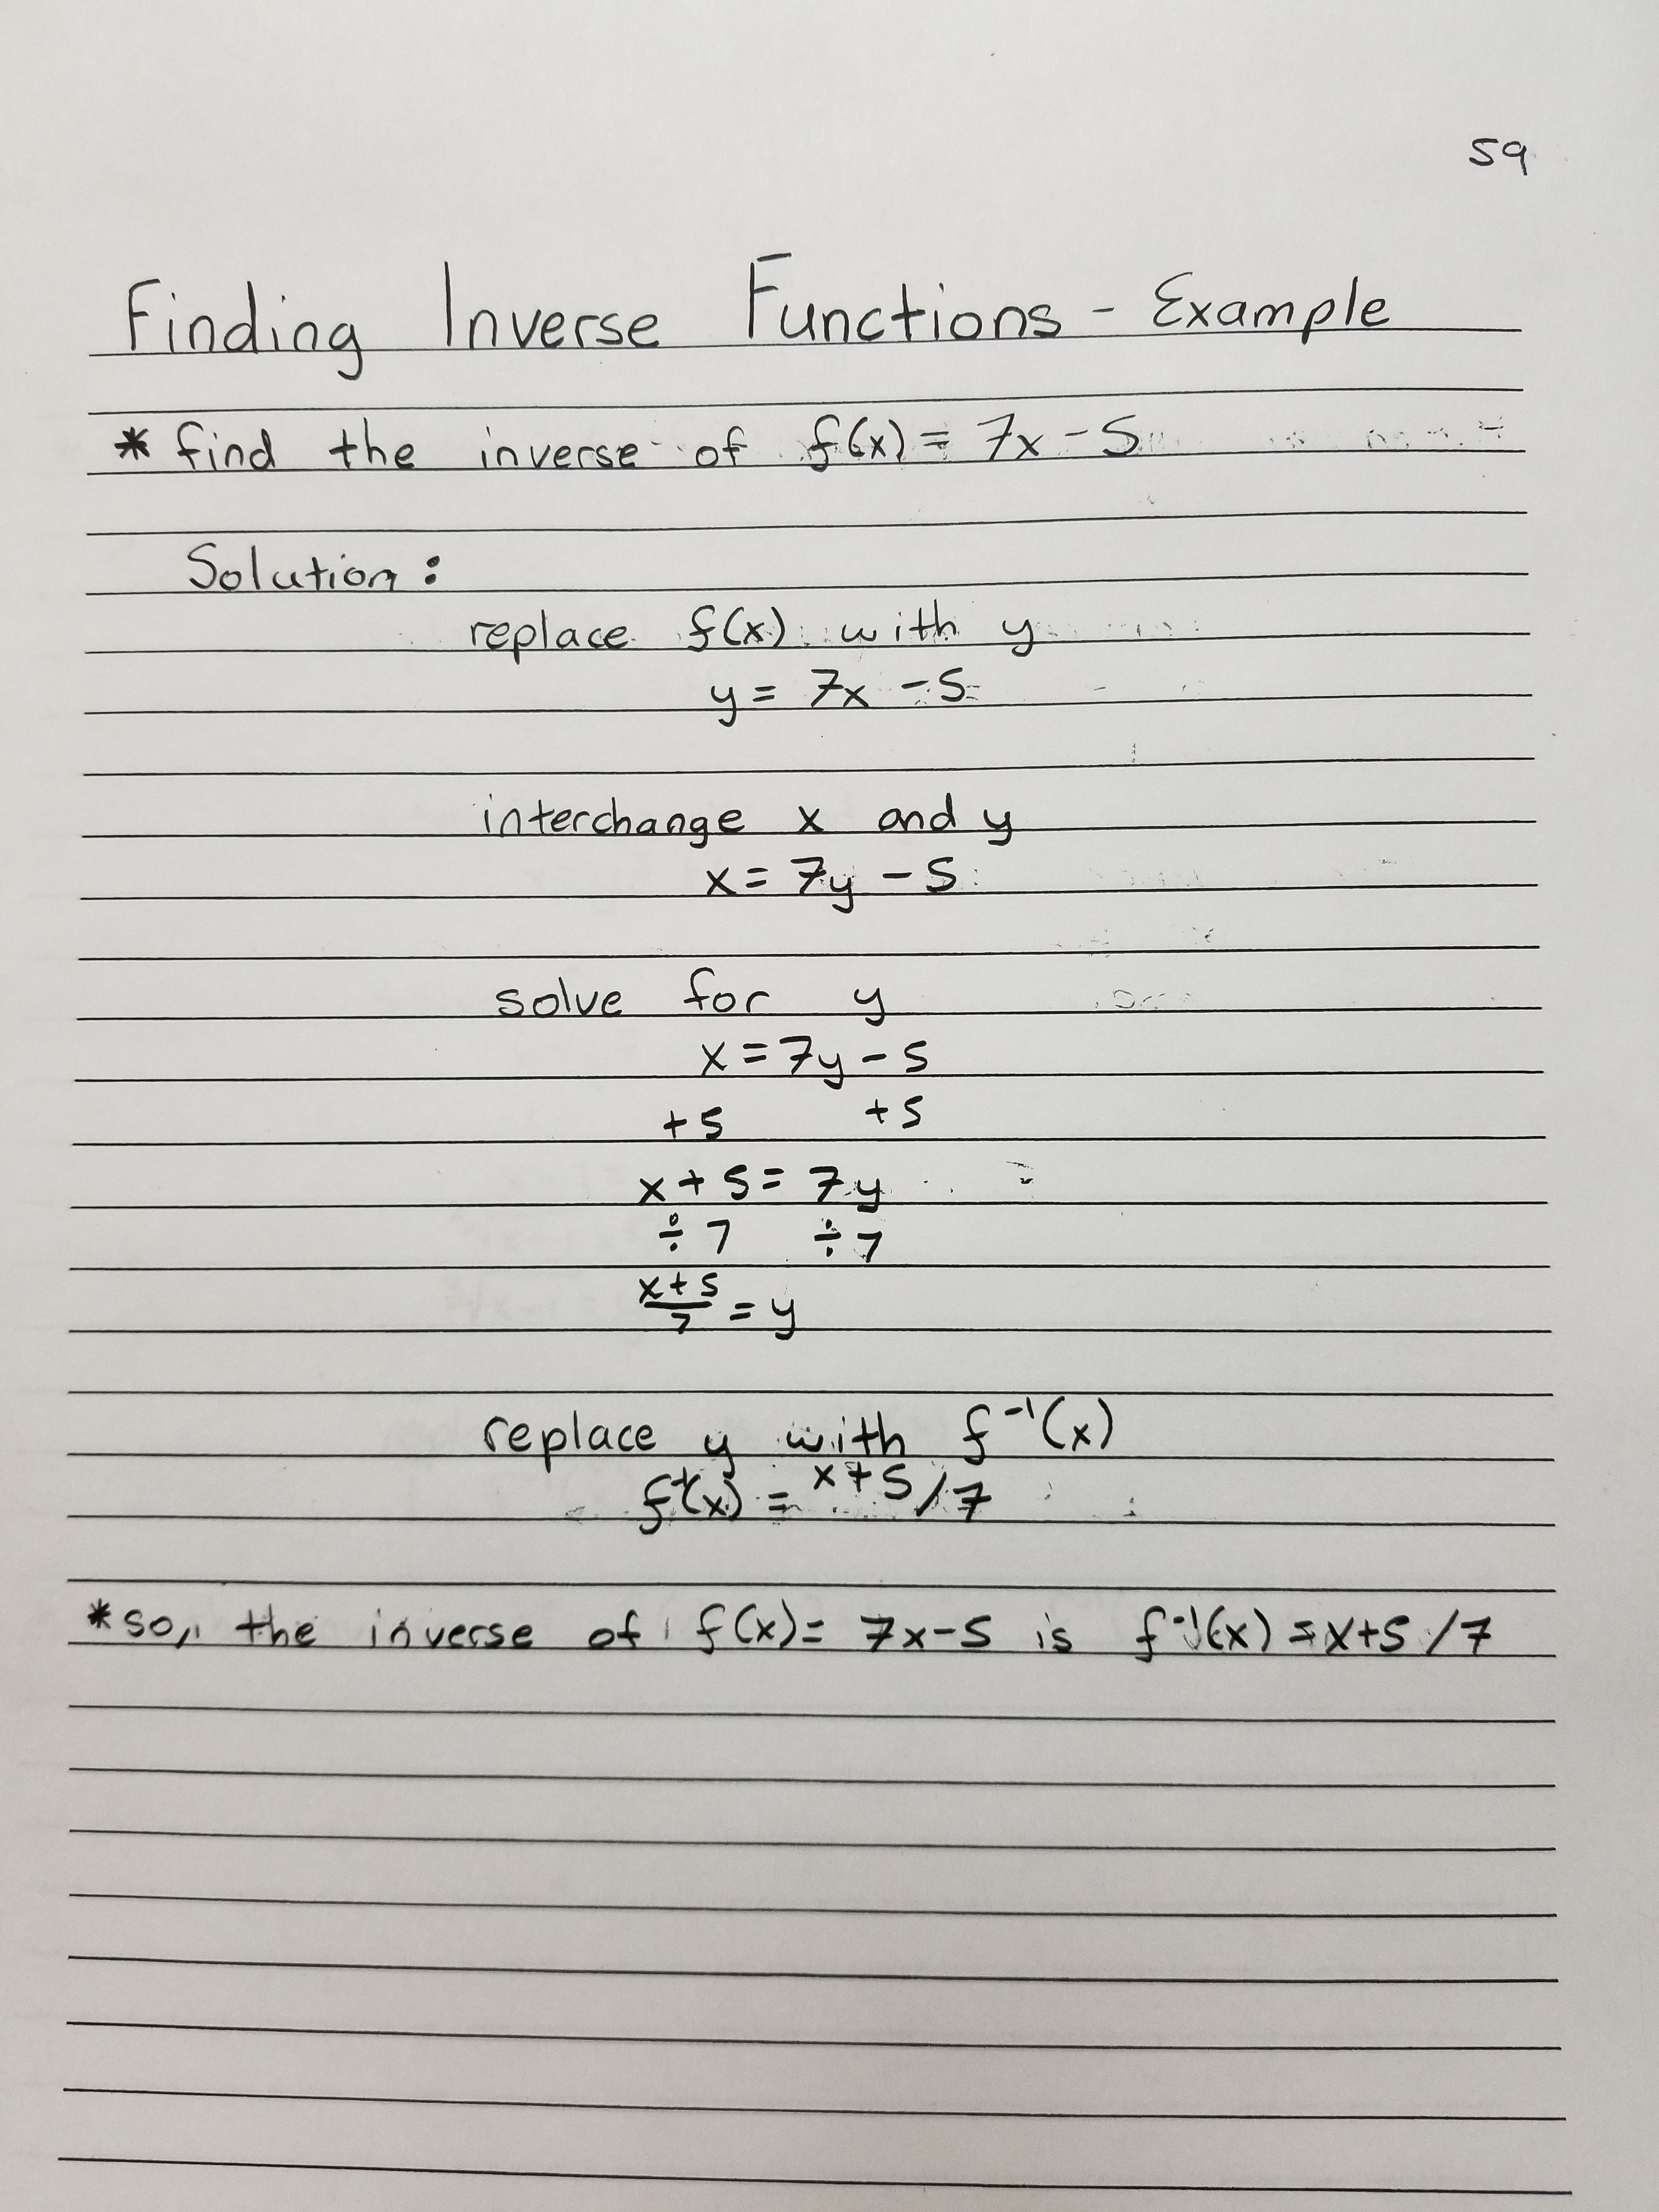 Finding Inverse Functions Example 1 Inverse Functions Life Hacks For School Differential Calculus